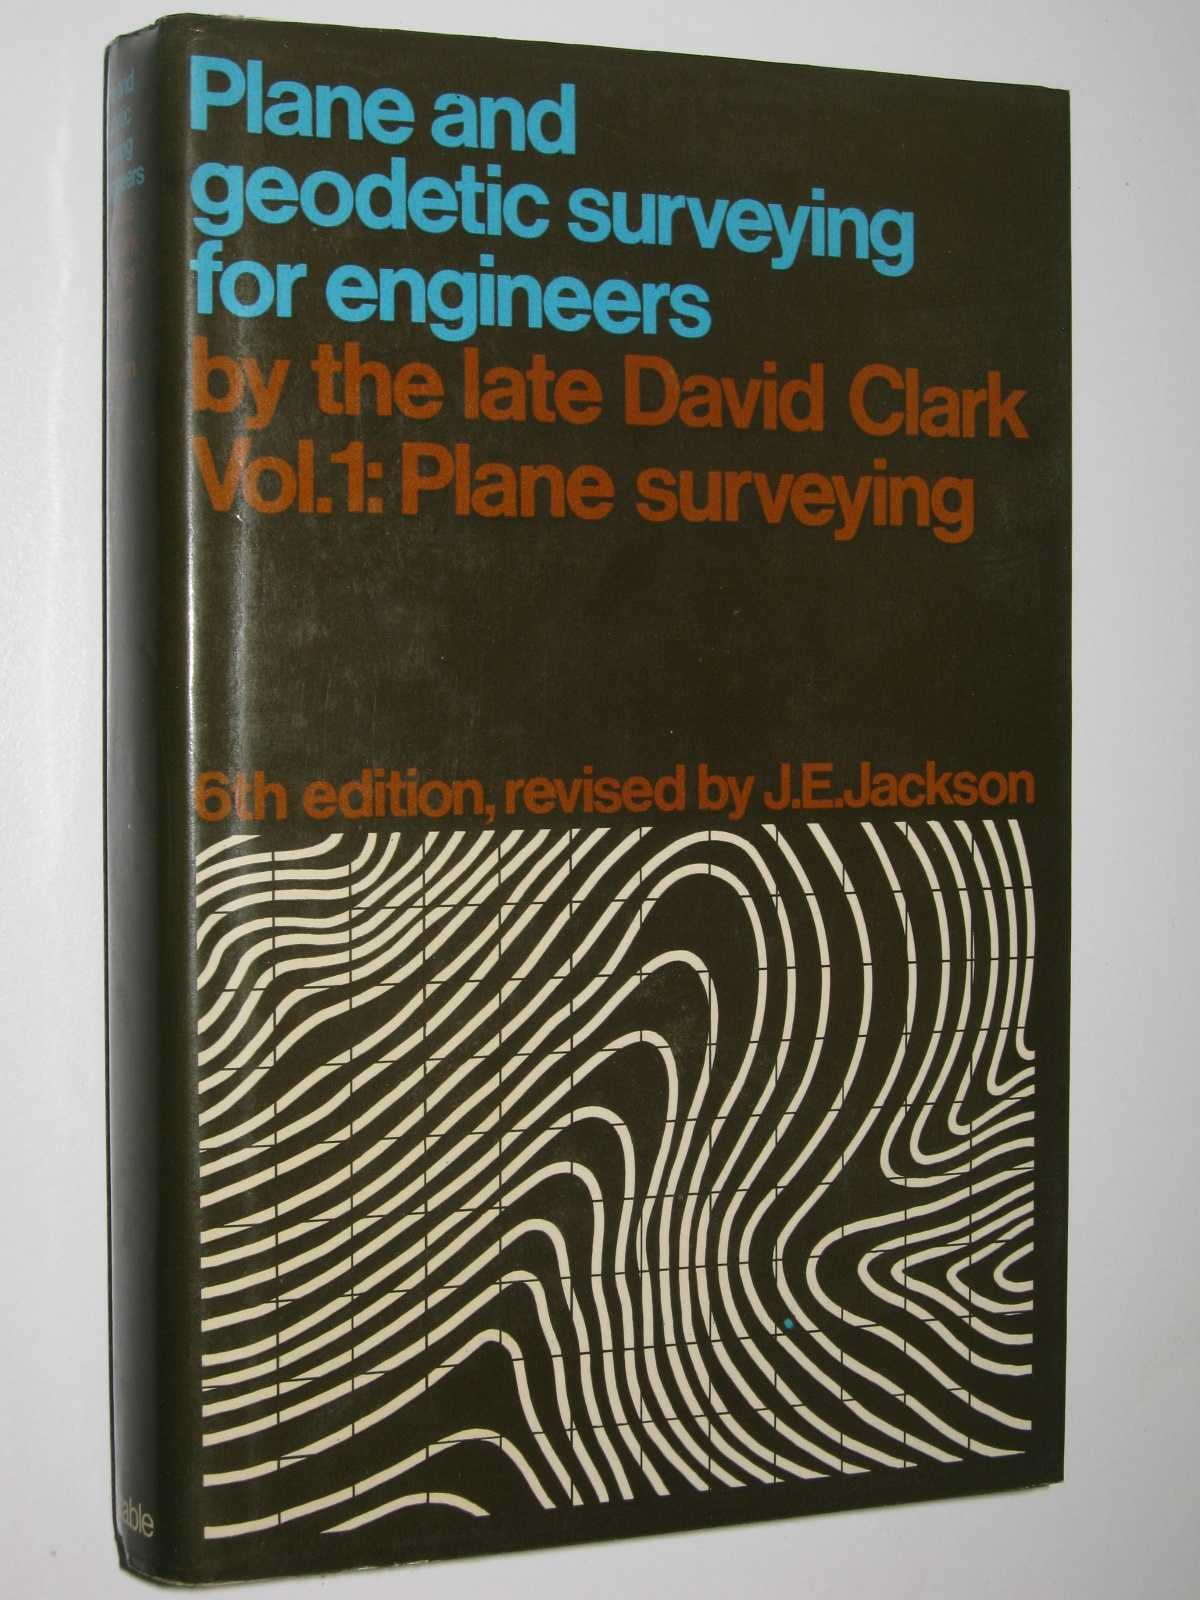 Image for Plane and Geodetic Surveying for Engineers Vol 1: Plane Surveying